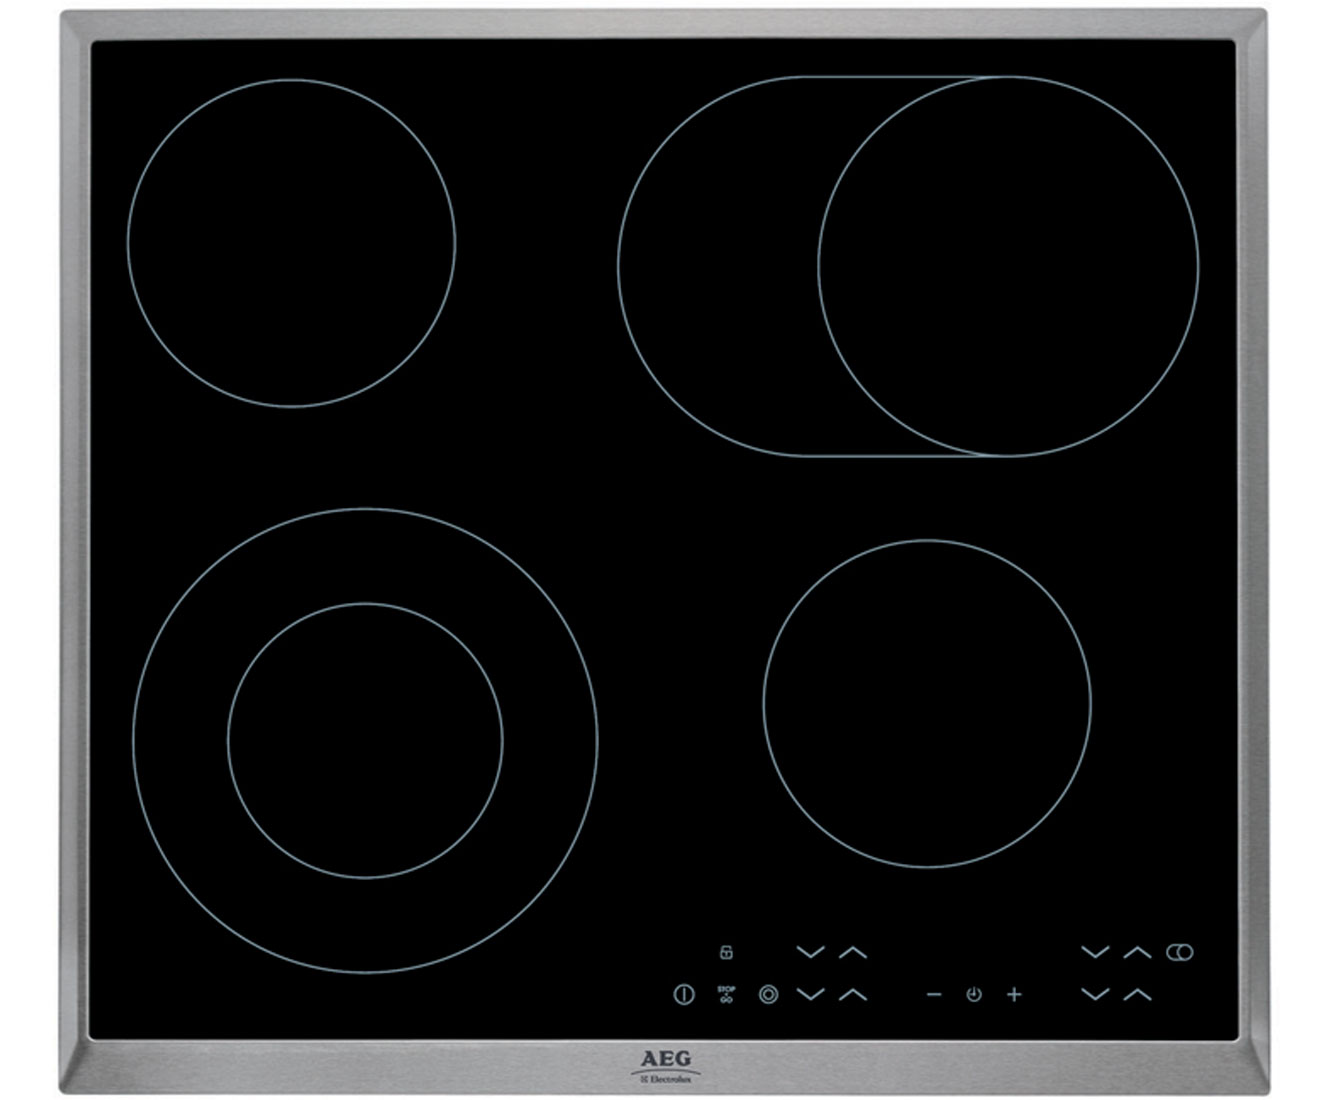 buy cheap aeg electric hob compare hobs prices for best uk deals. Black Bedroom Furniture Sets. Home Design Ideas